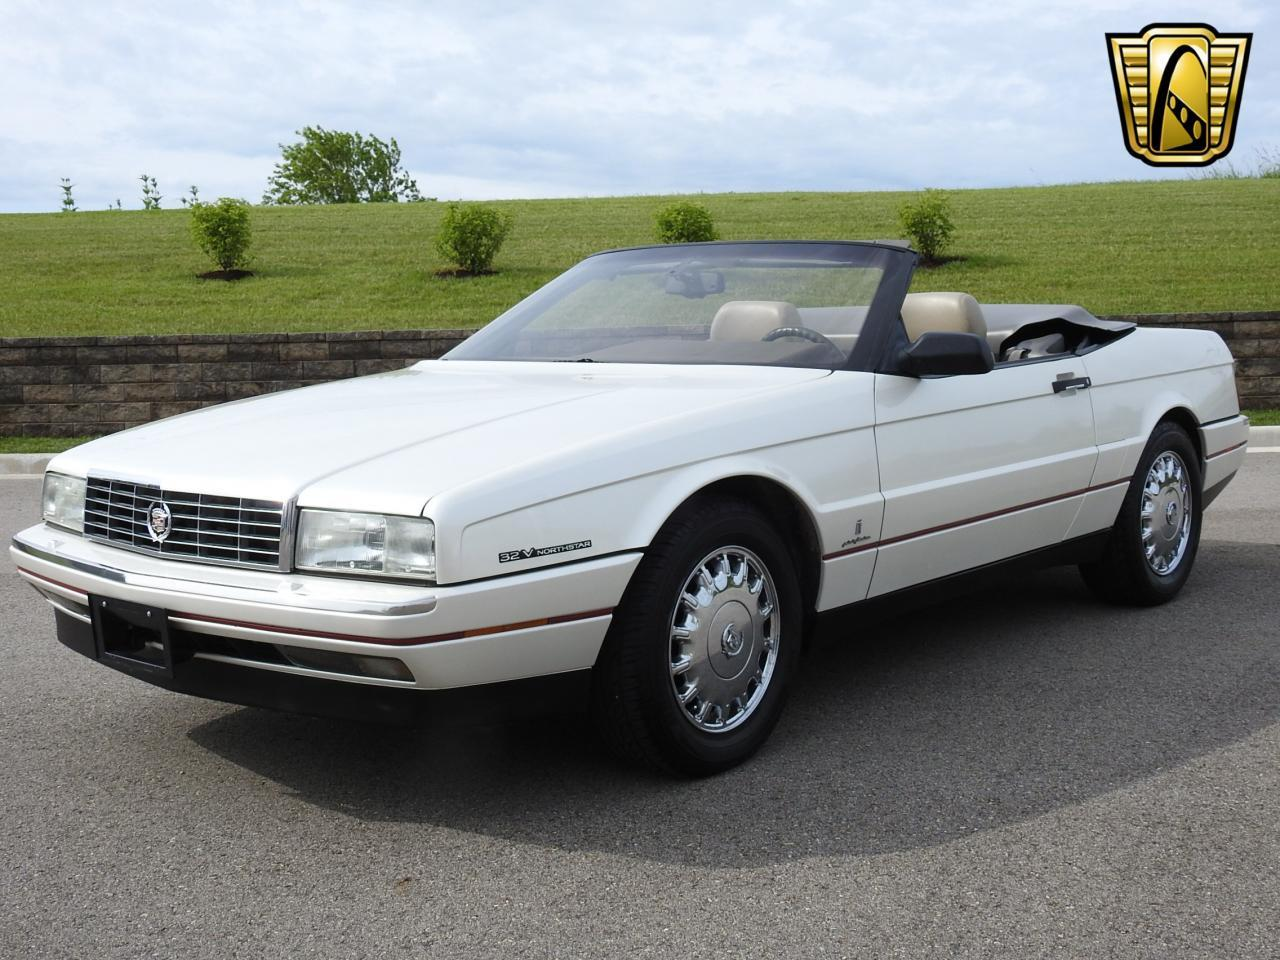 Large Picture of 1993 Allante - $10,995.00 - LF3Y